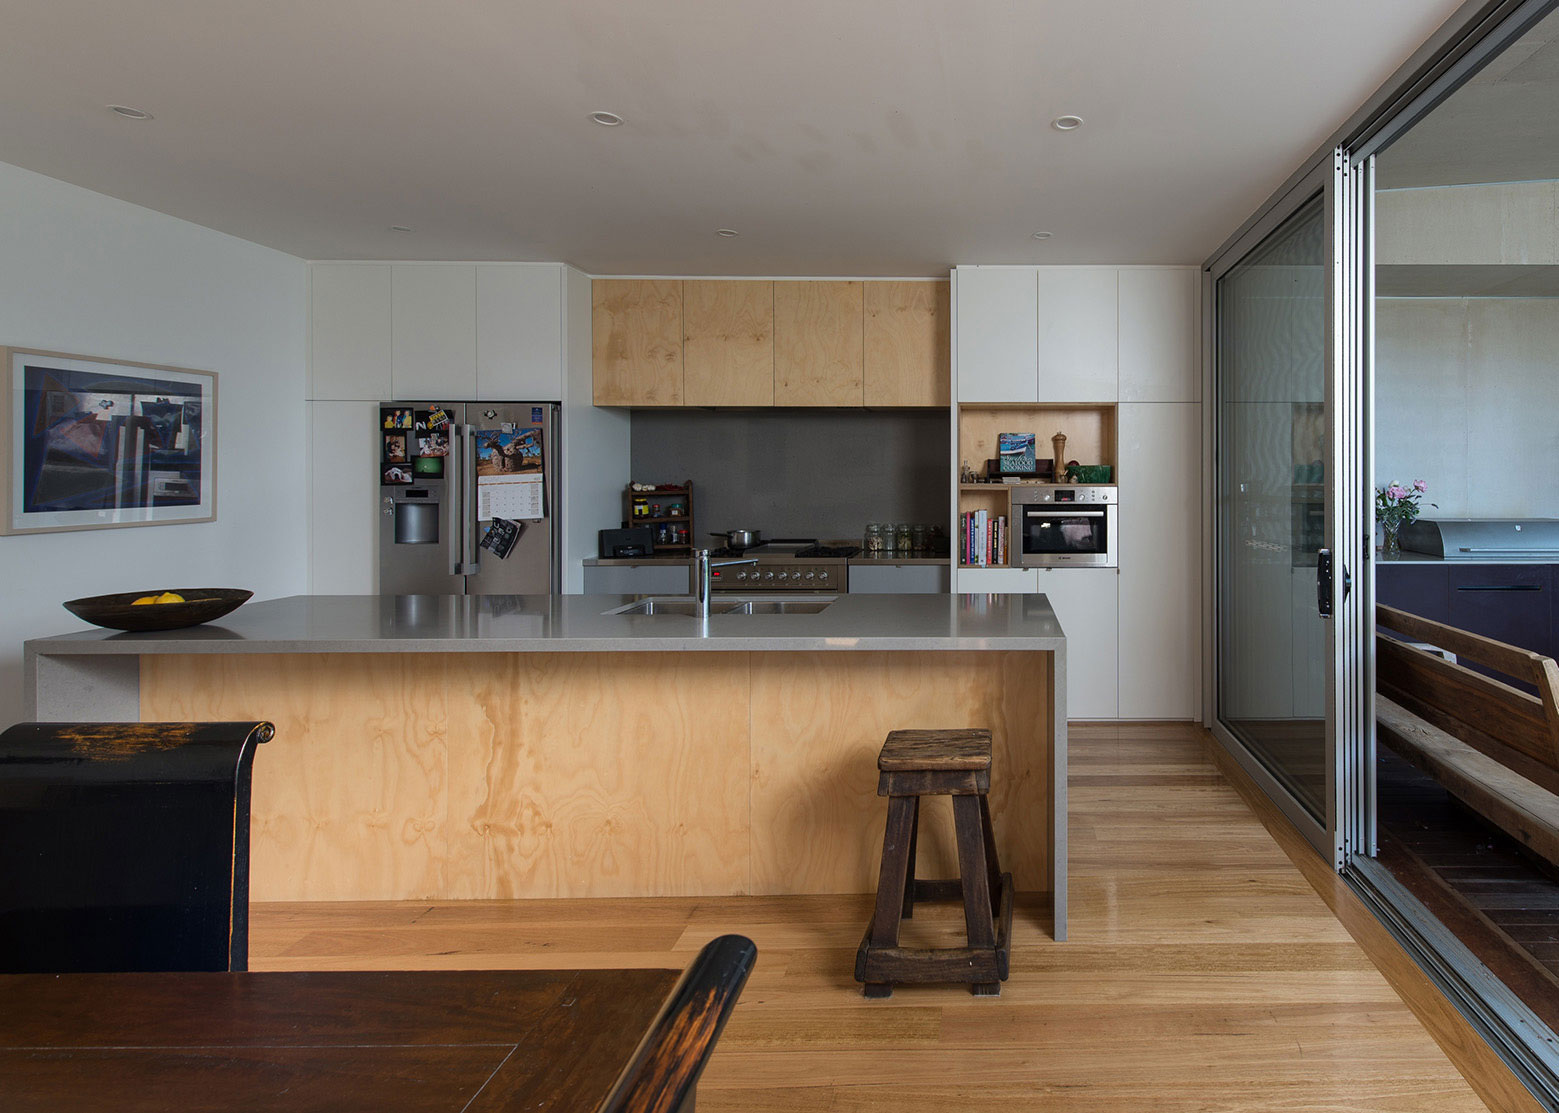 374 Hamilton by Bourne Blue Architects